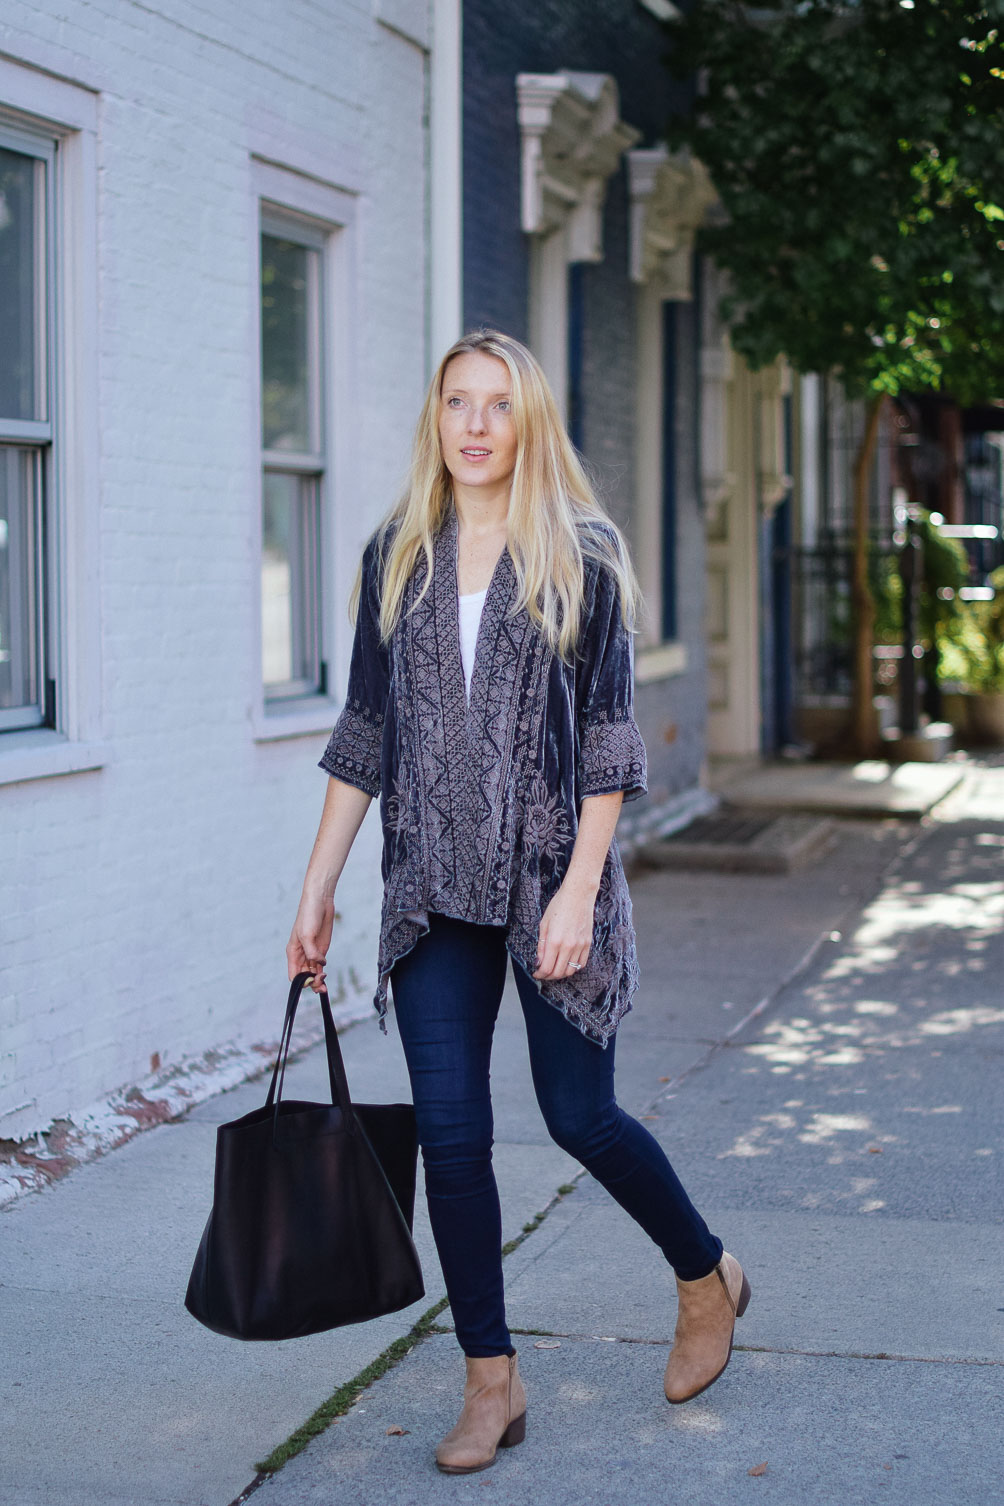 Leslie Musser embroidered velvet jacket and dark skinny jeans with ankle boots fall outfit inspiration on one brass fox